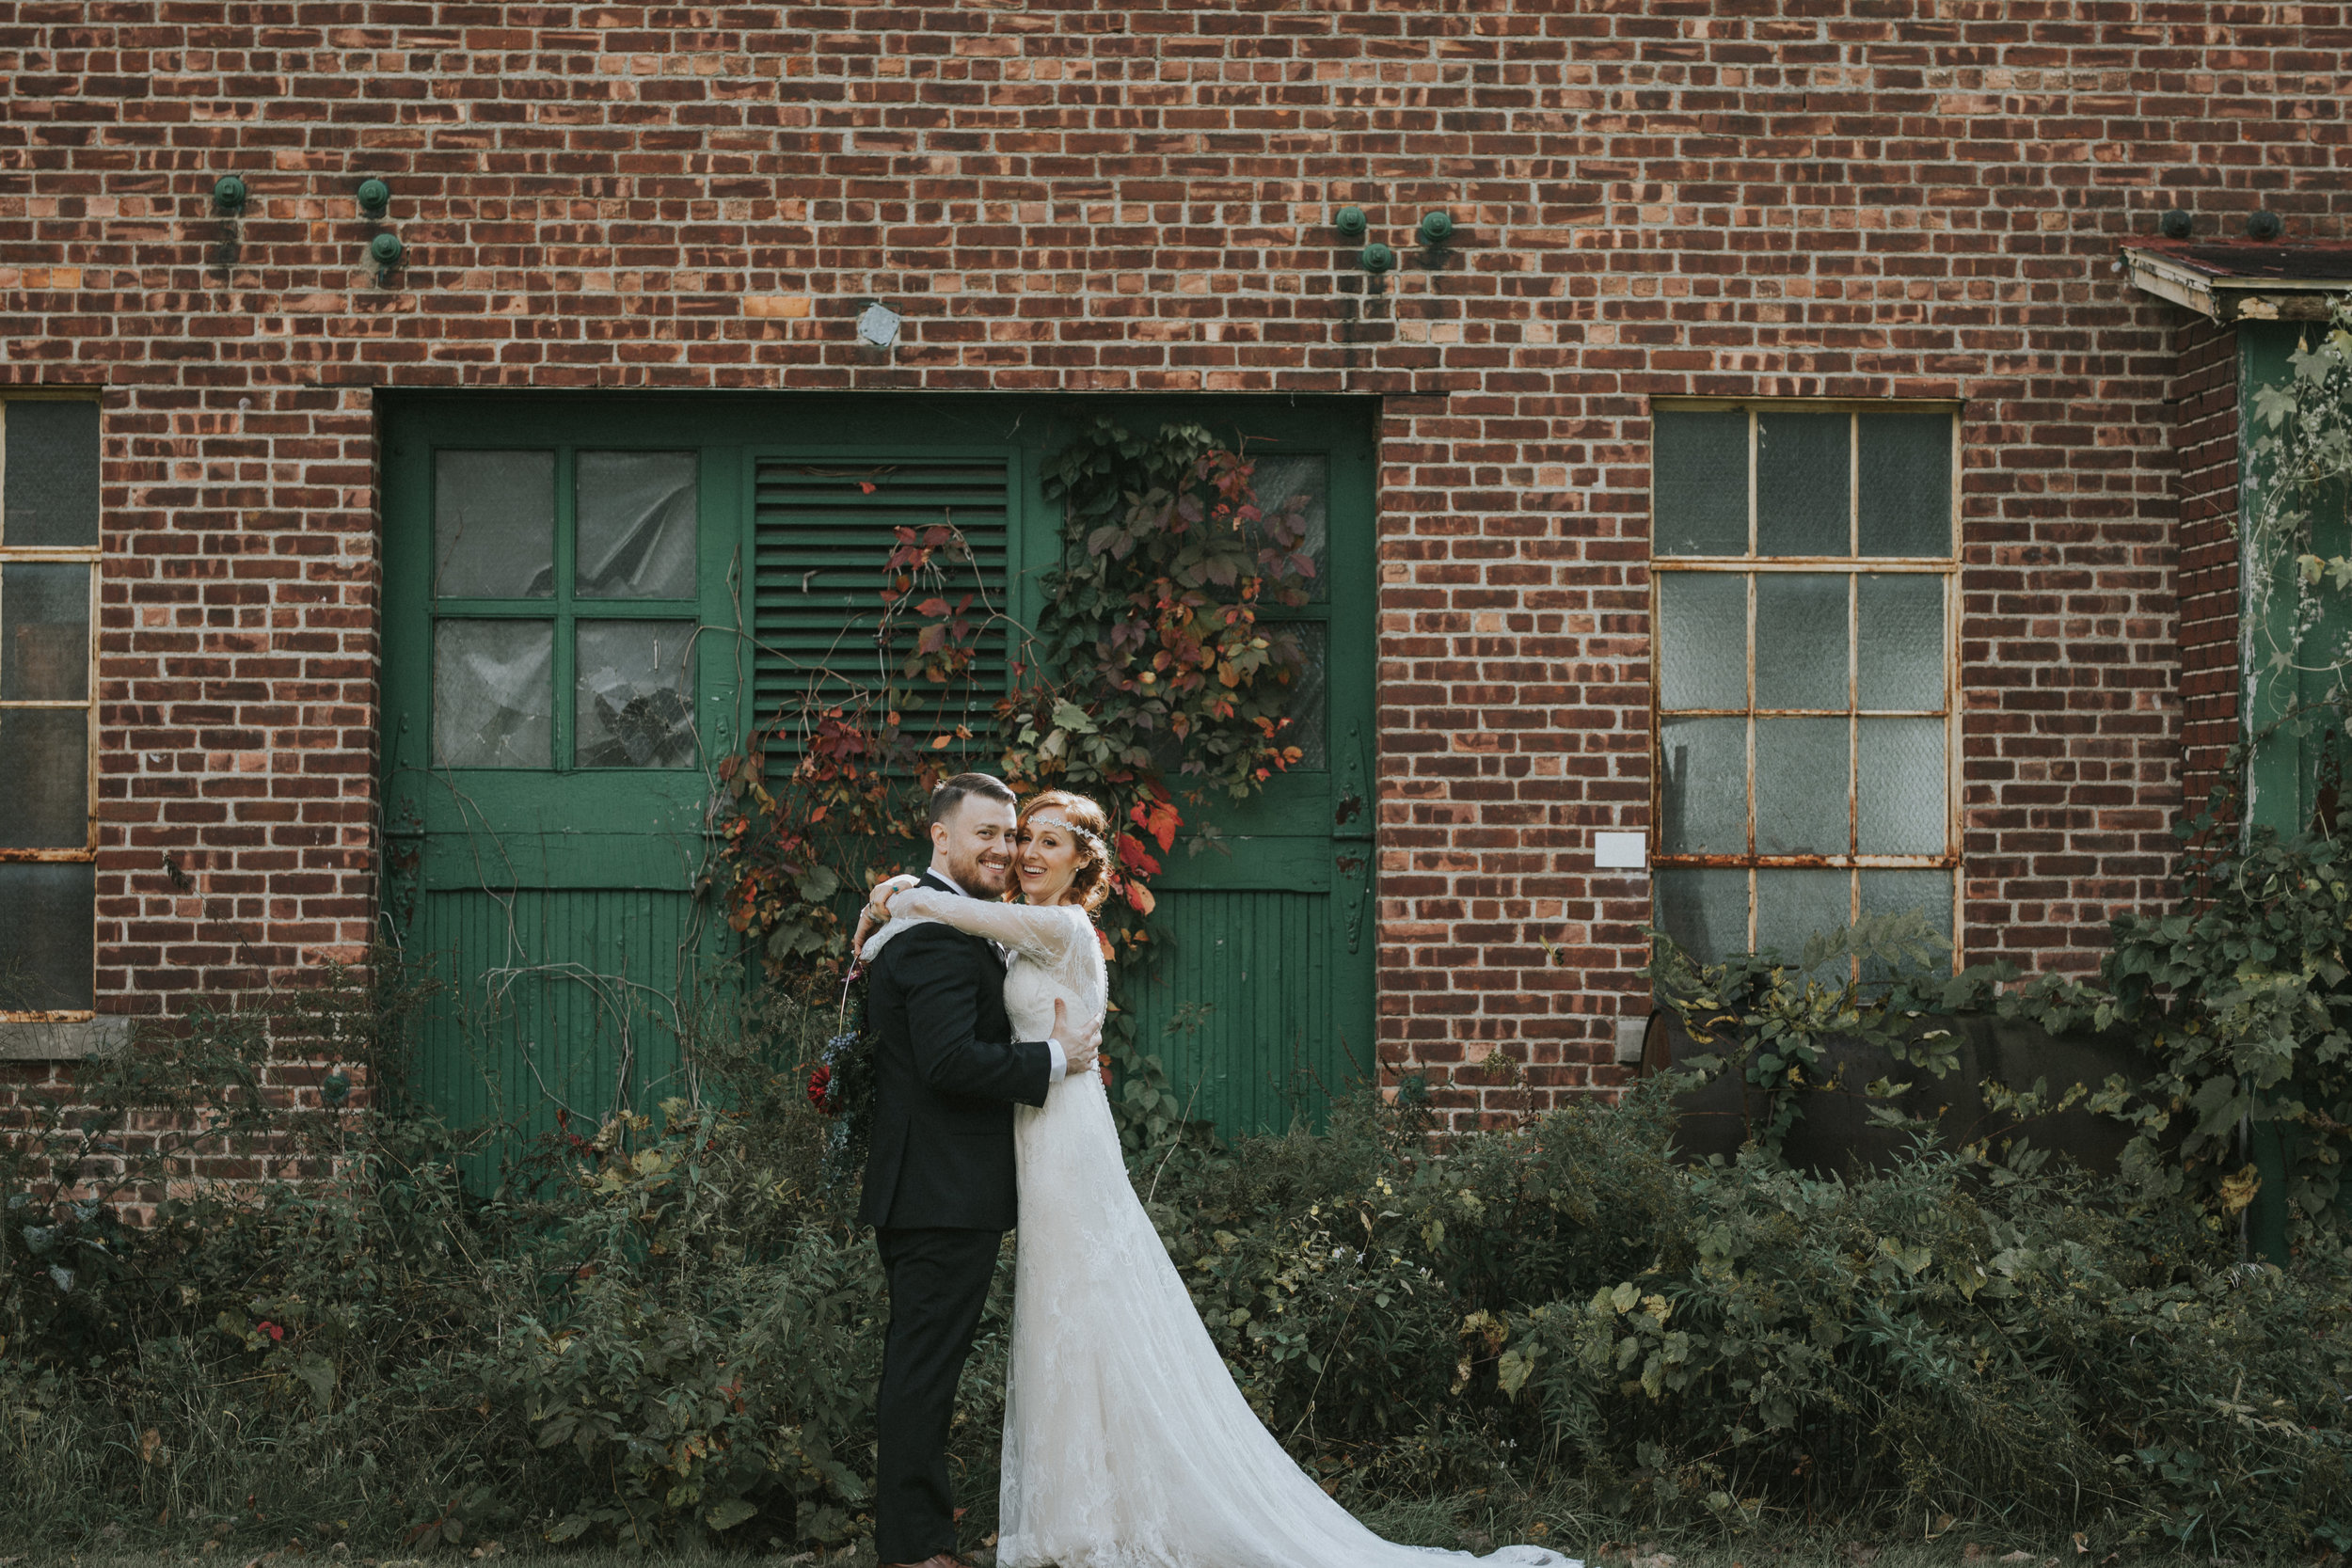 shaker_heritage_barn_wedding_016.jpg